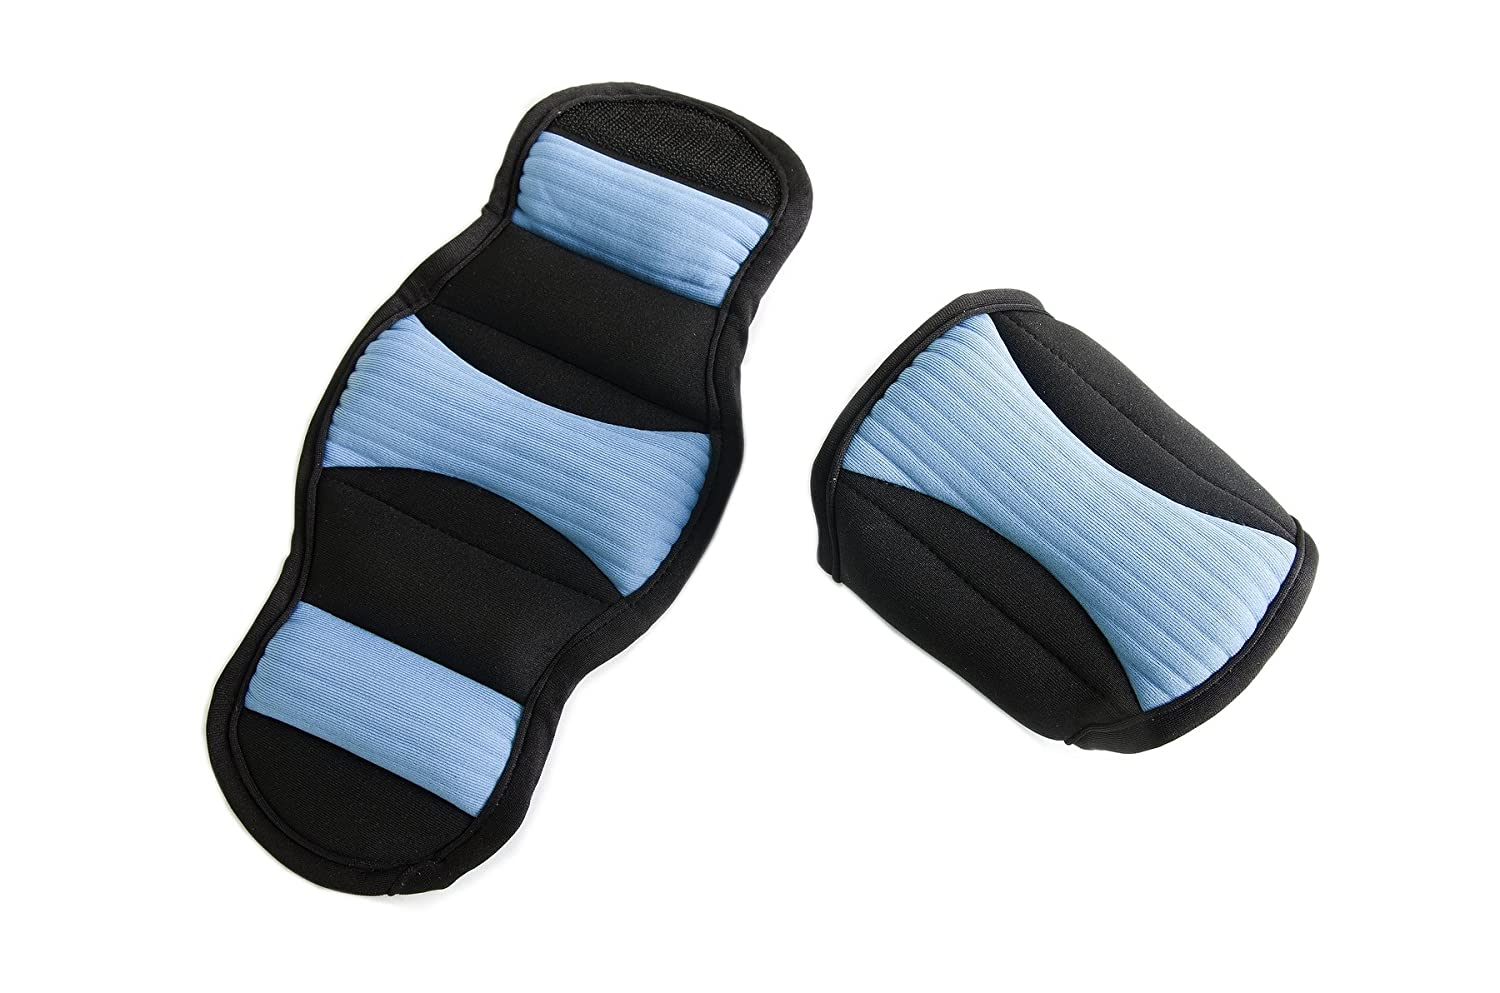 Fa Sports tobillo weights xx cm blue negro azul